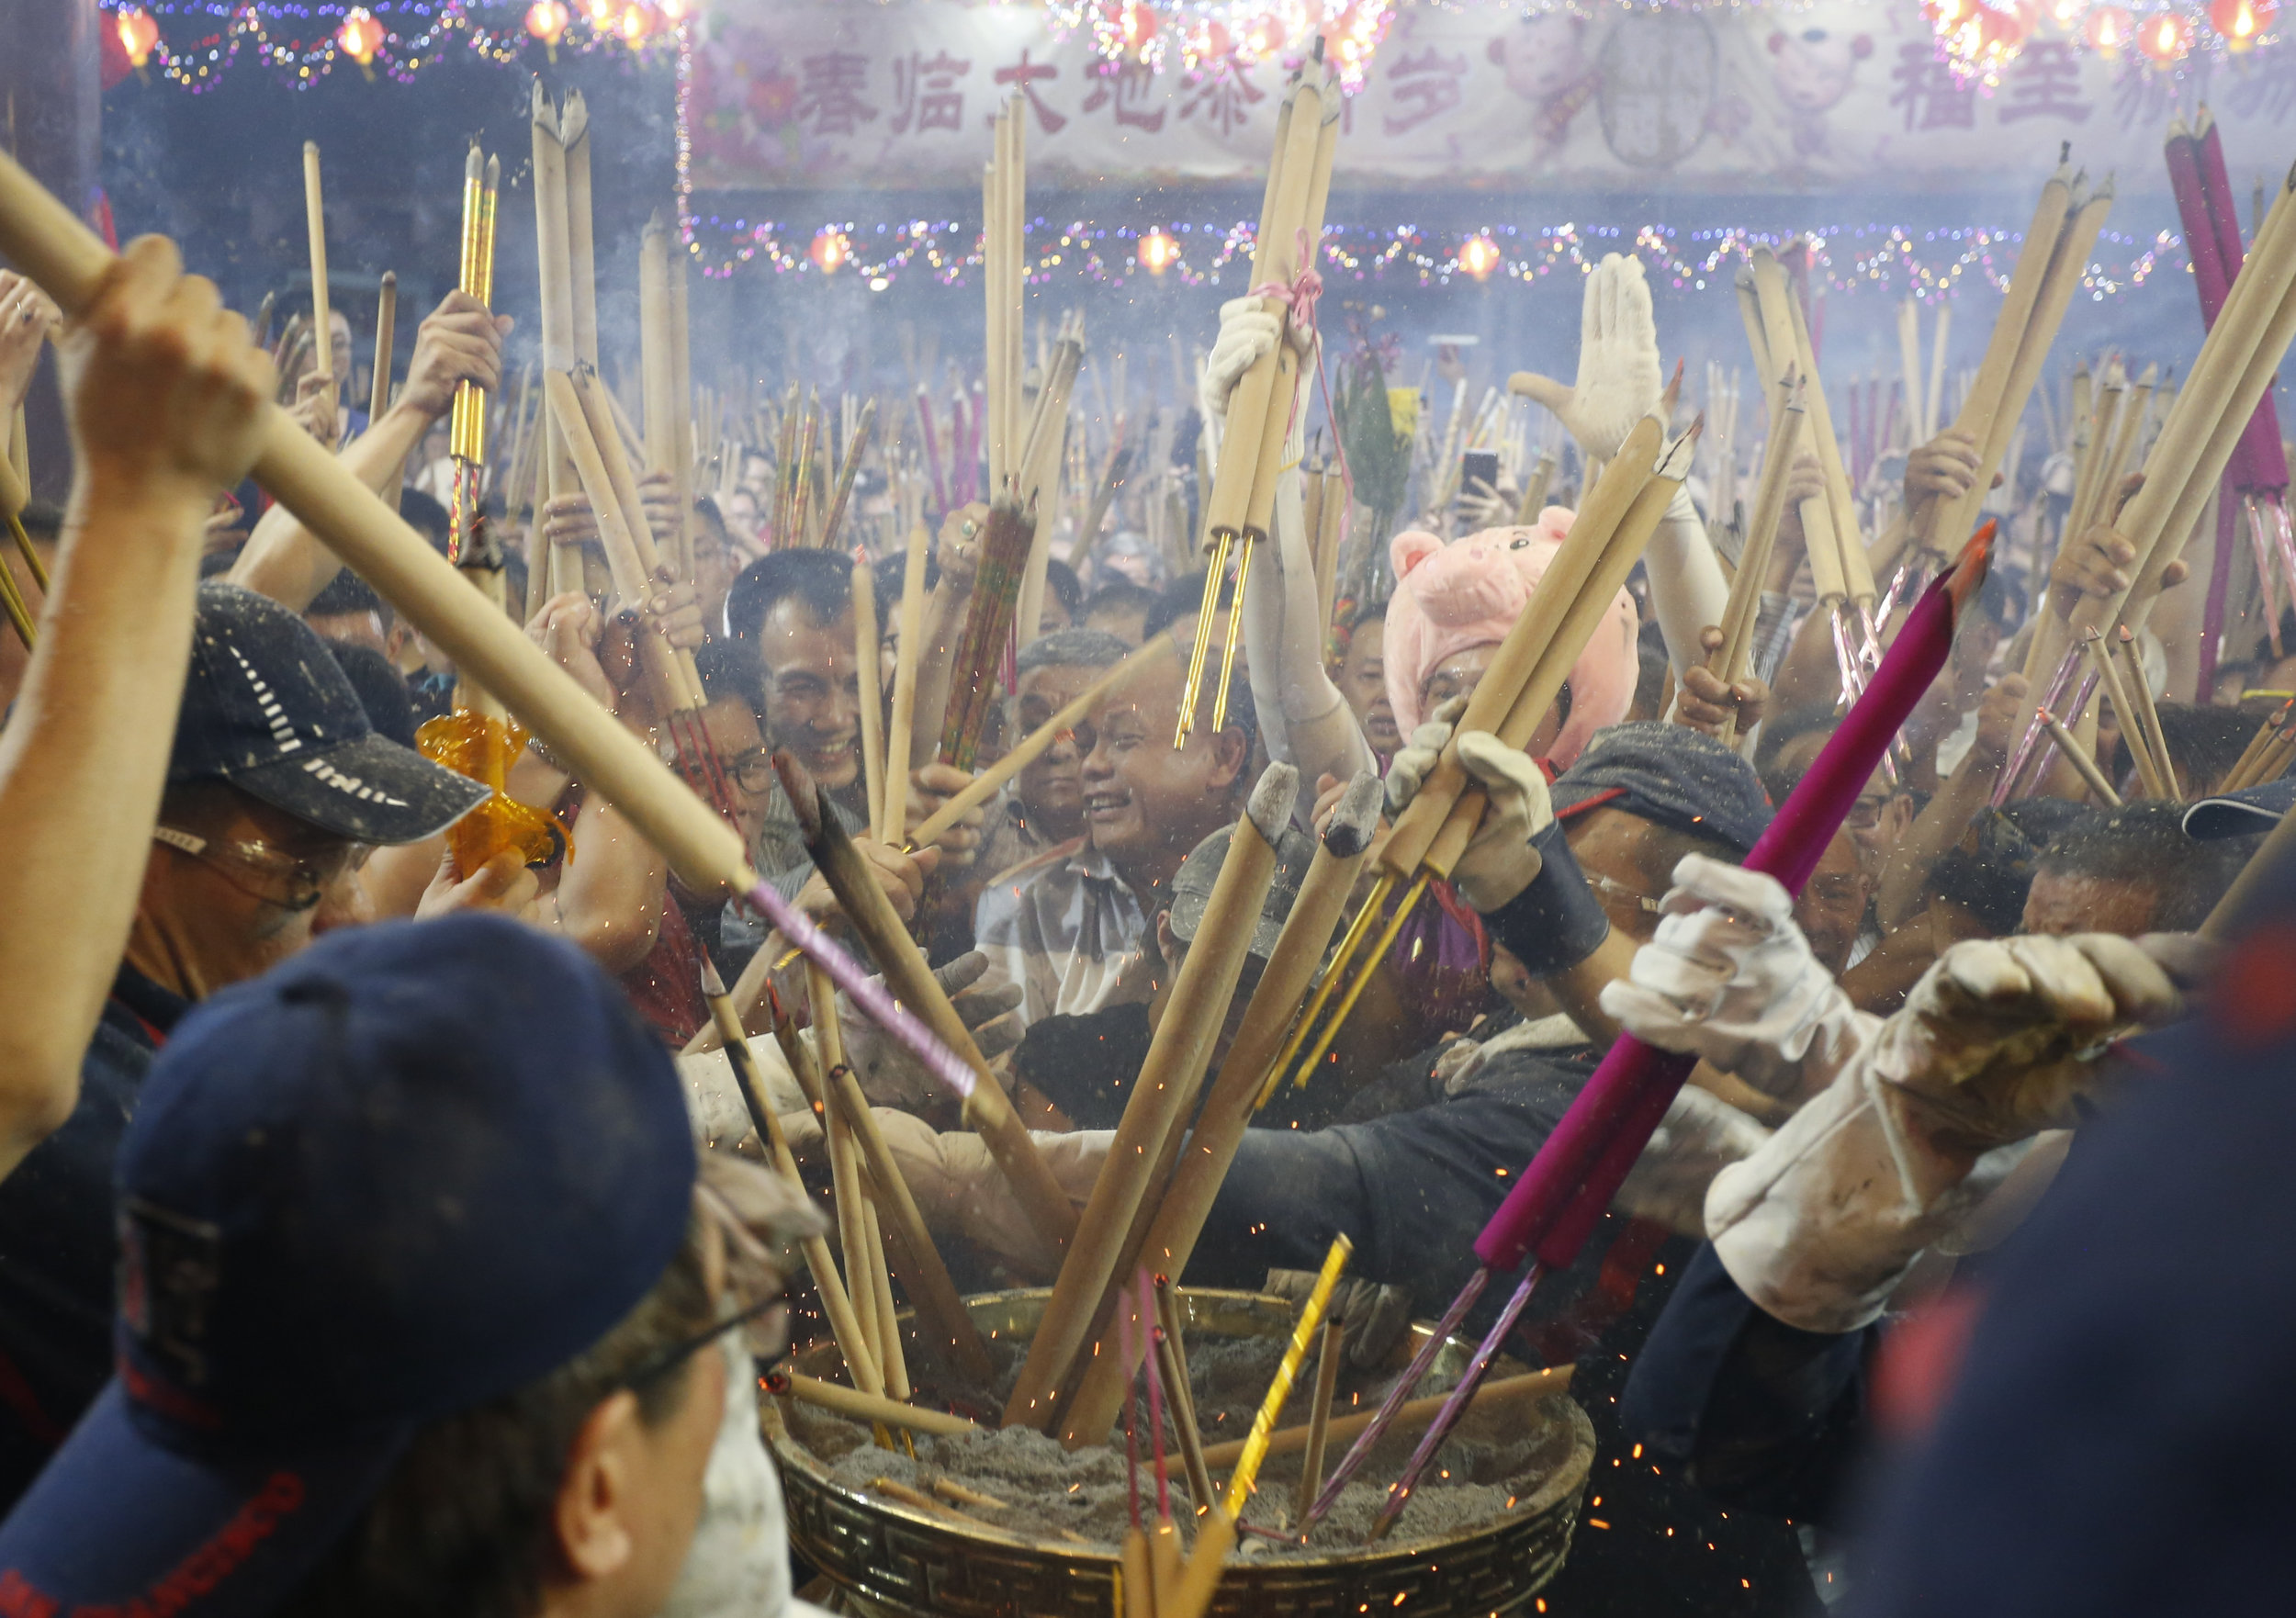 People rush to plant the first joss stick of the Lunar New Year of the Pig at the stroke of midnight at the Kwan Im Thong Hood Cho temple in Singapore, February 4, 2019. REUTERS/Feline Lim